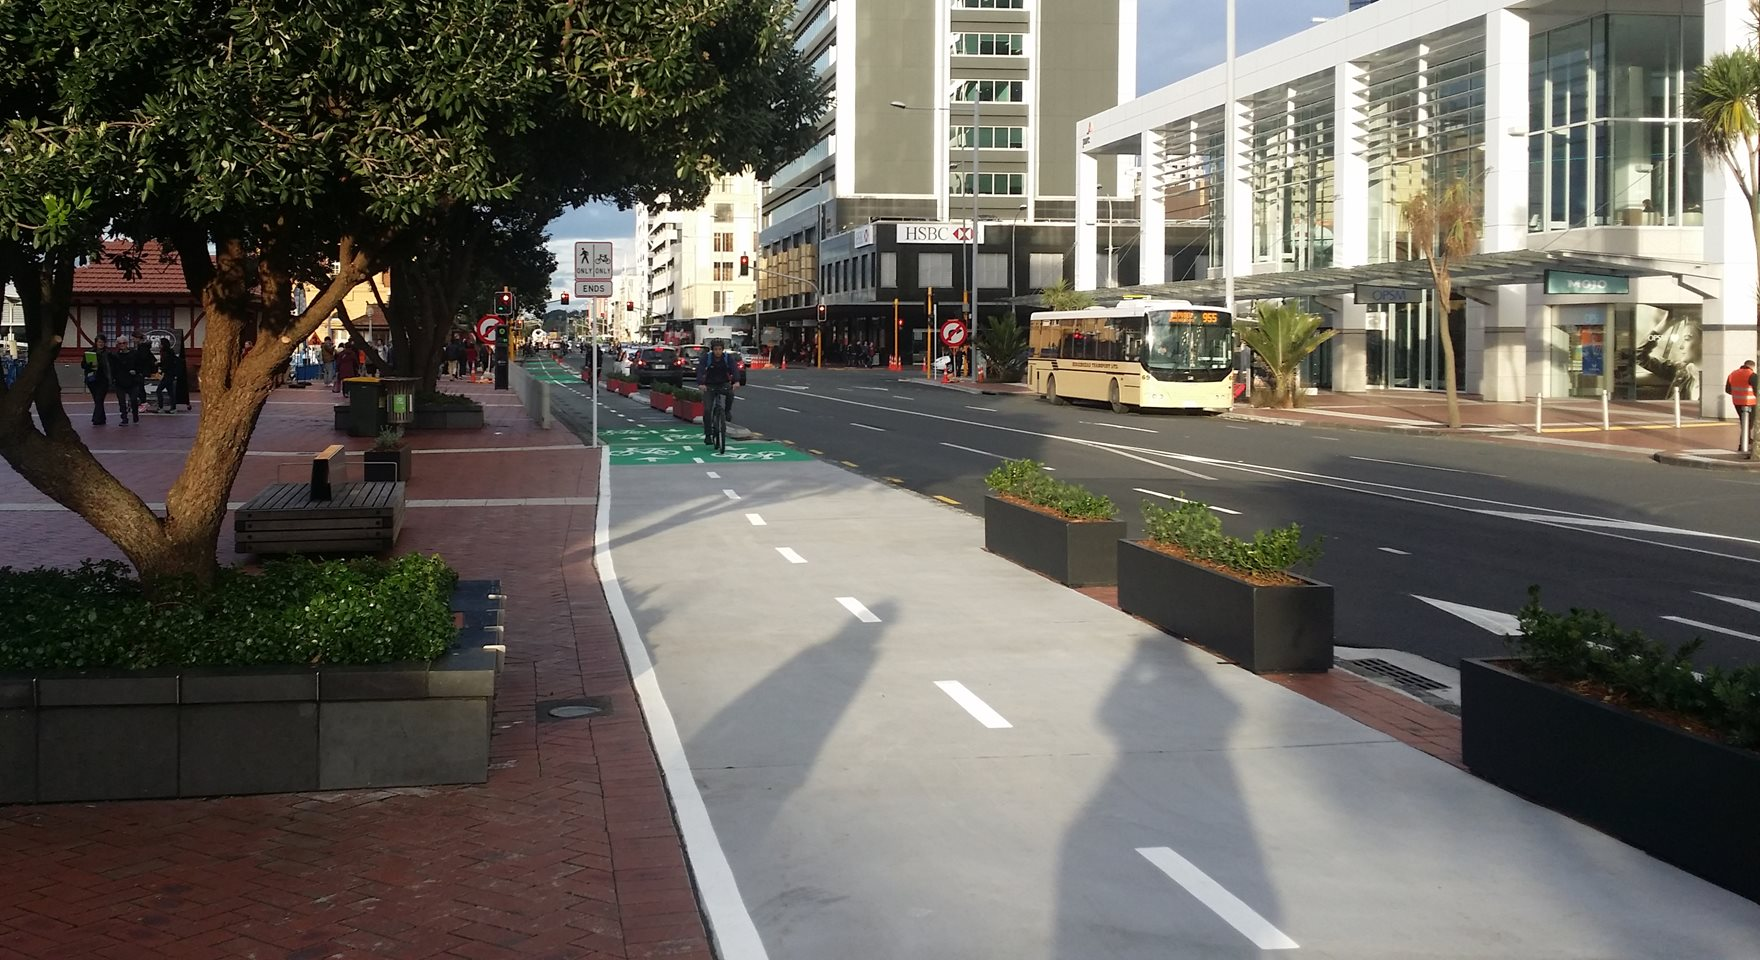 Hot off the press: Quay St Cycleway now open